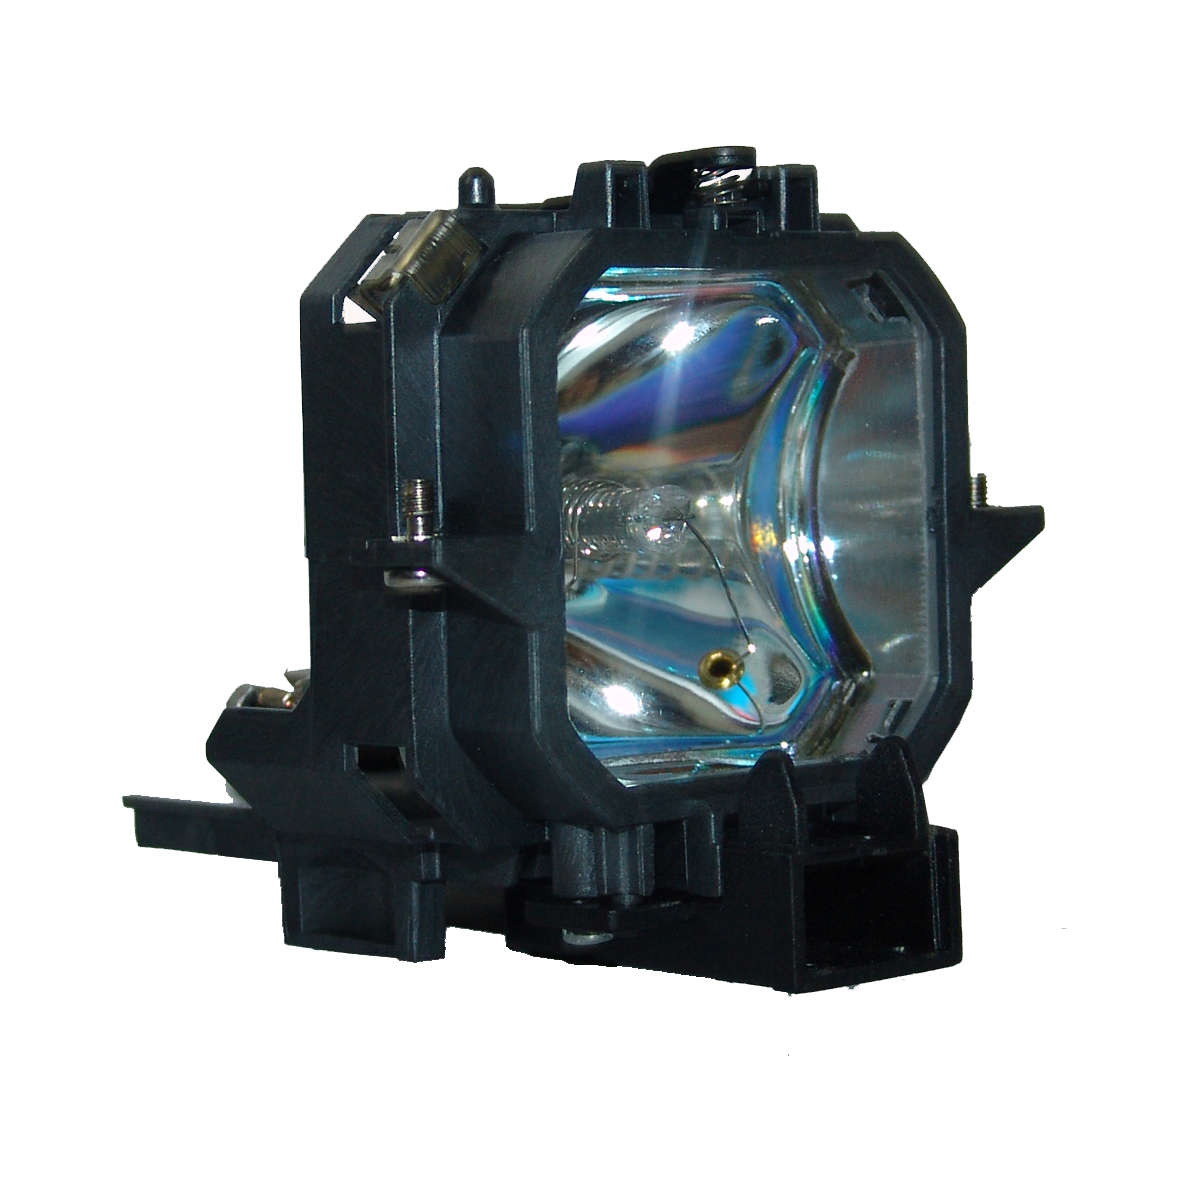 Lutema Platinum for Epson ELPLP27 Projector Lamp with Housing (Original Philips Bulb Inside) - image 4 of 5